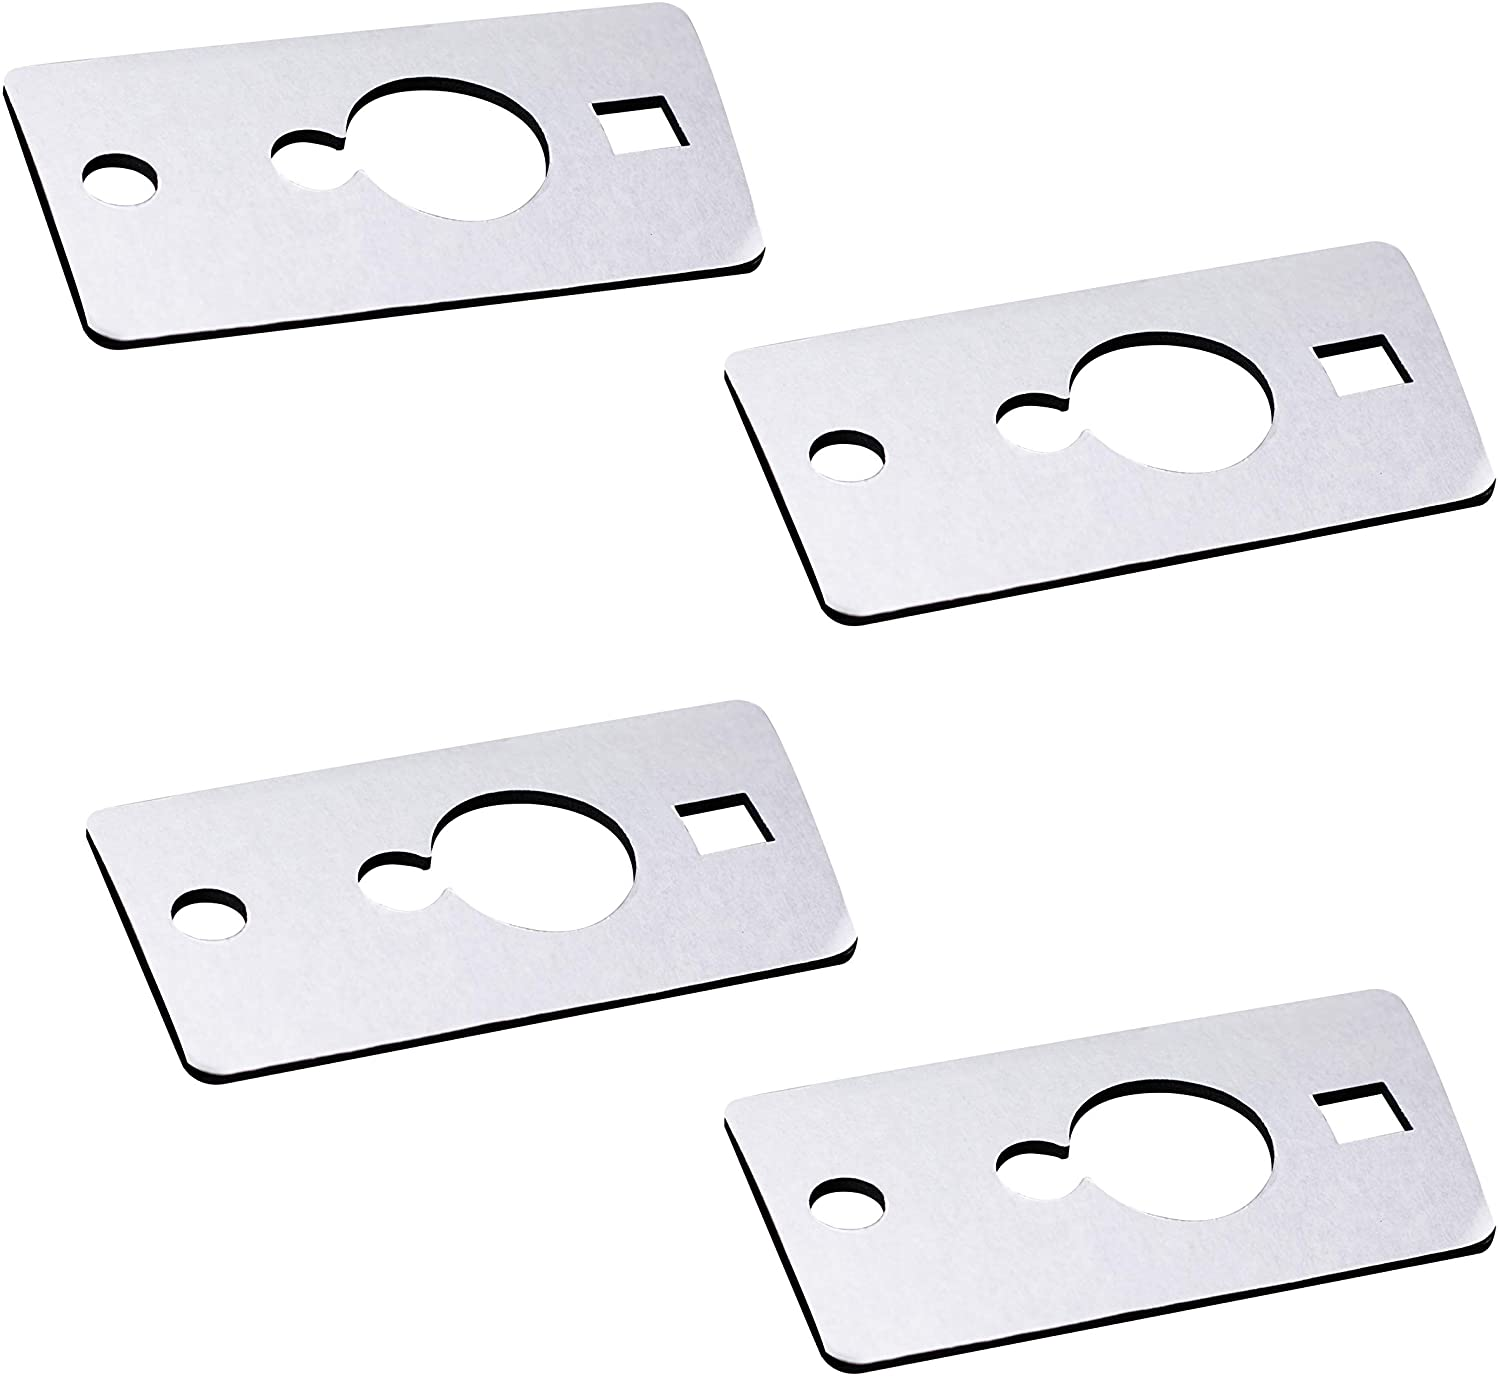 MOFORKIT Corner Roof Cab Marker Clearance Light Seal Gaskets Compatible with Hummer H2 2003 to 2009